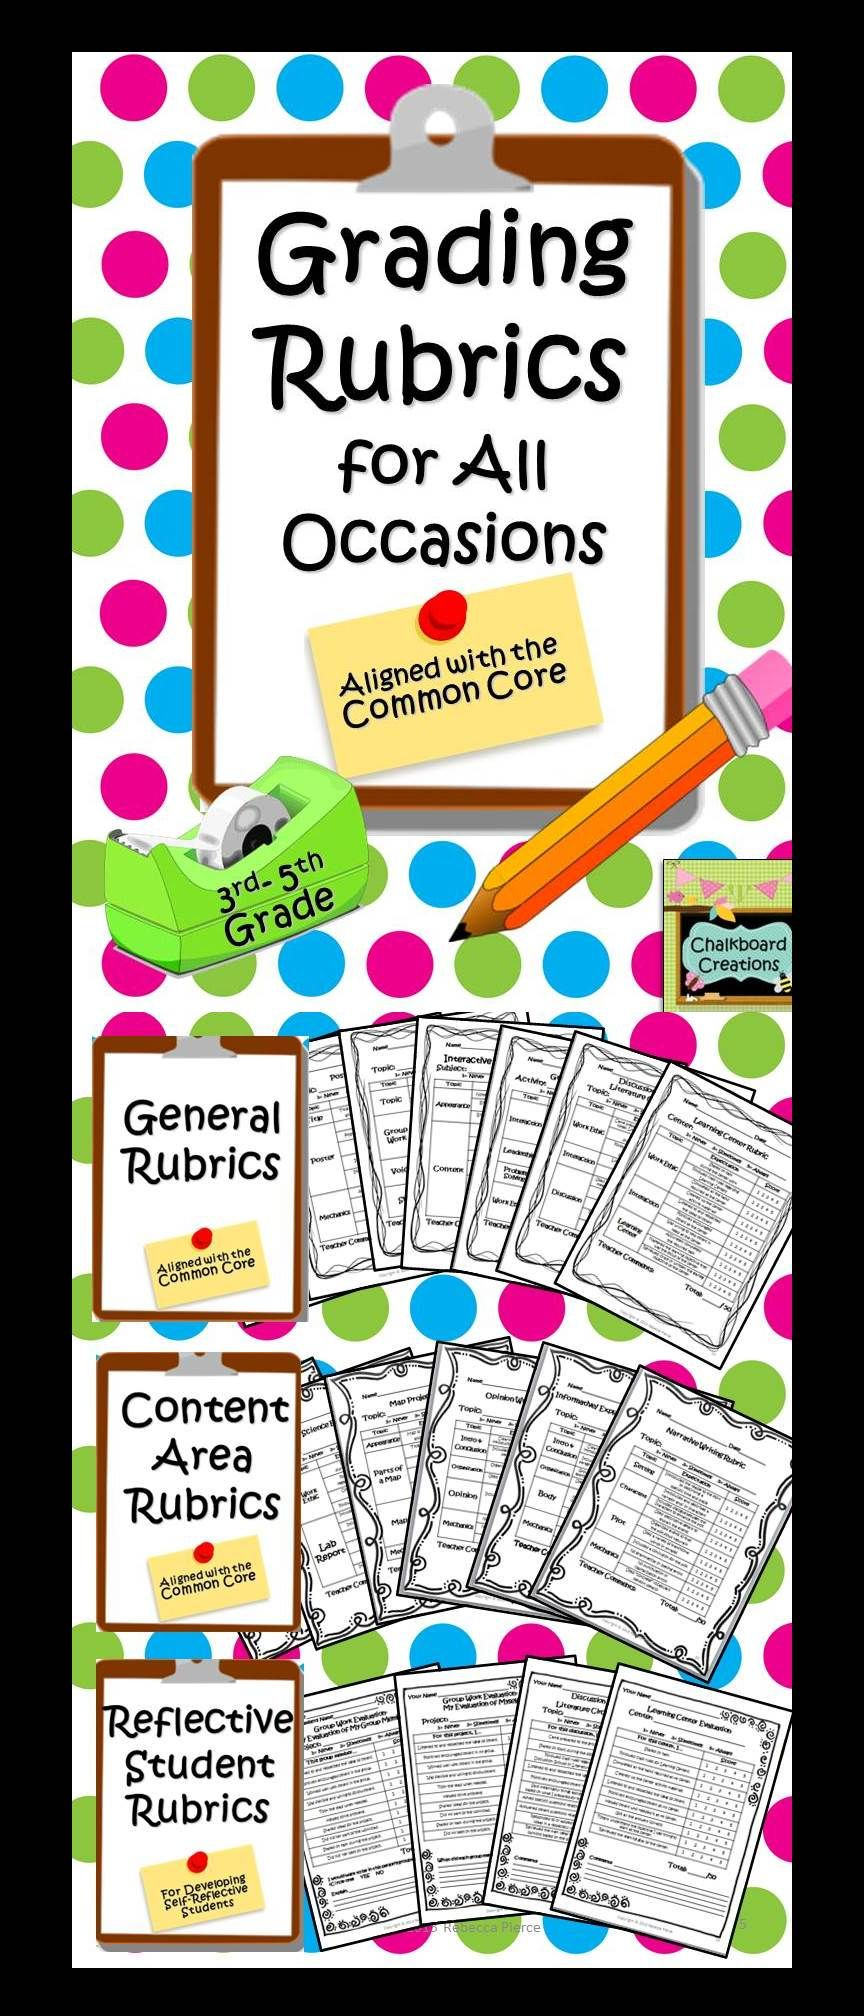 14 Rubrics to help you with that huge pile of grading! PLUS there are 4 Self-Evaluations for students to fill out about themselves. Save yourself some time...   teacherspayteachers.com